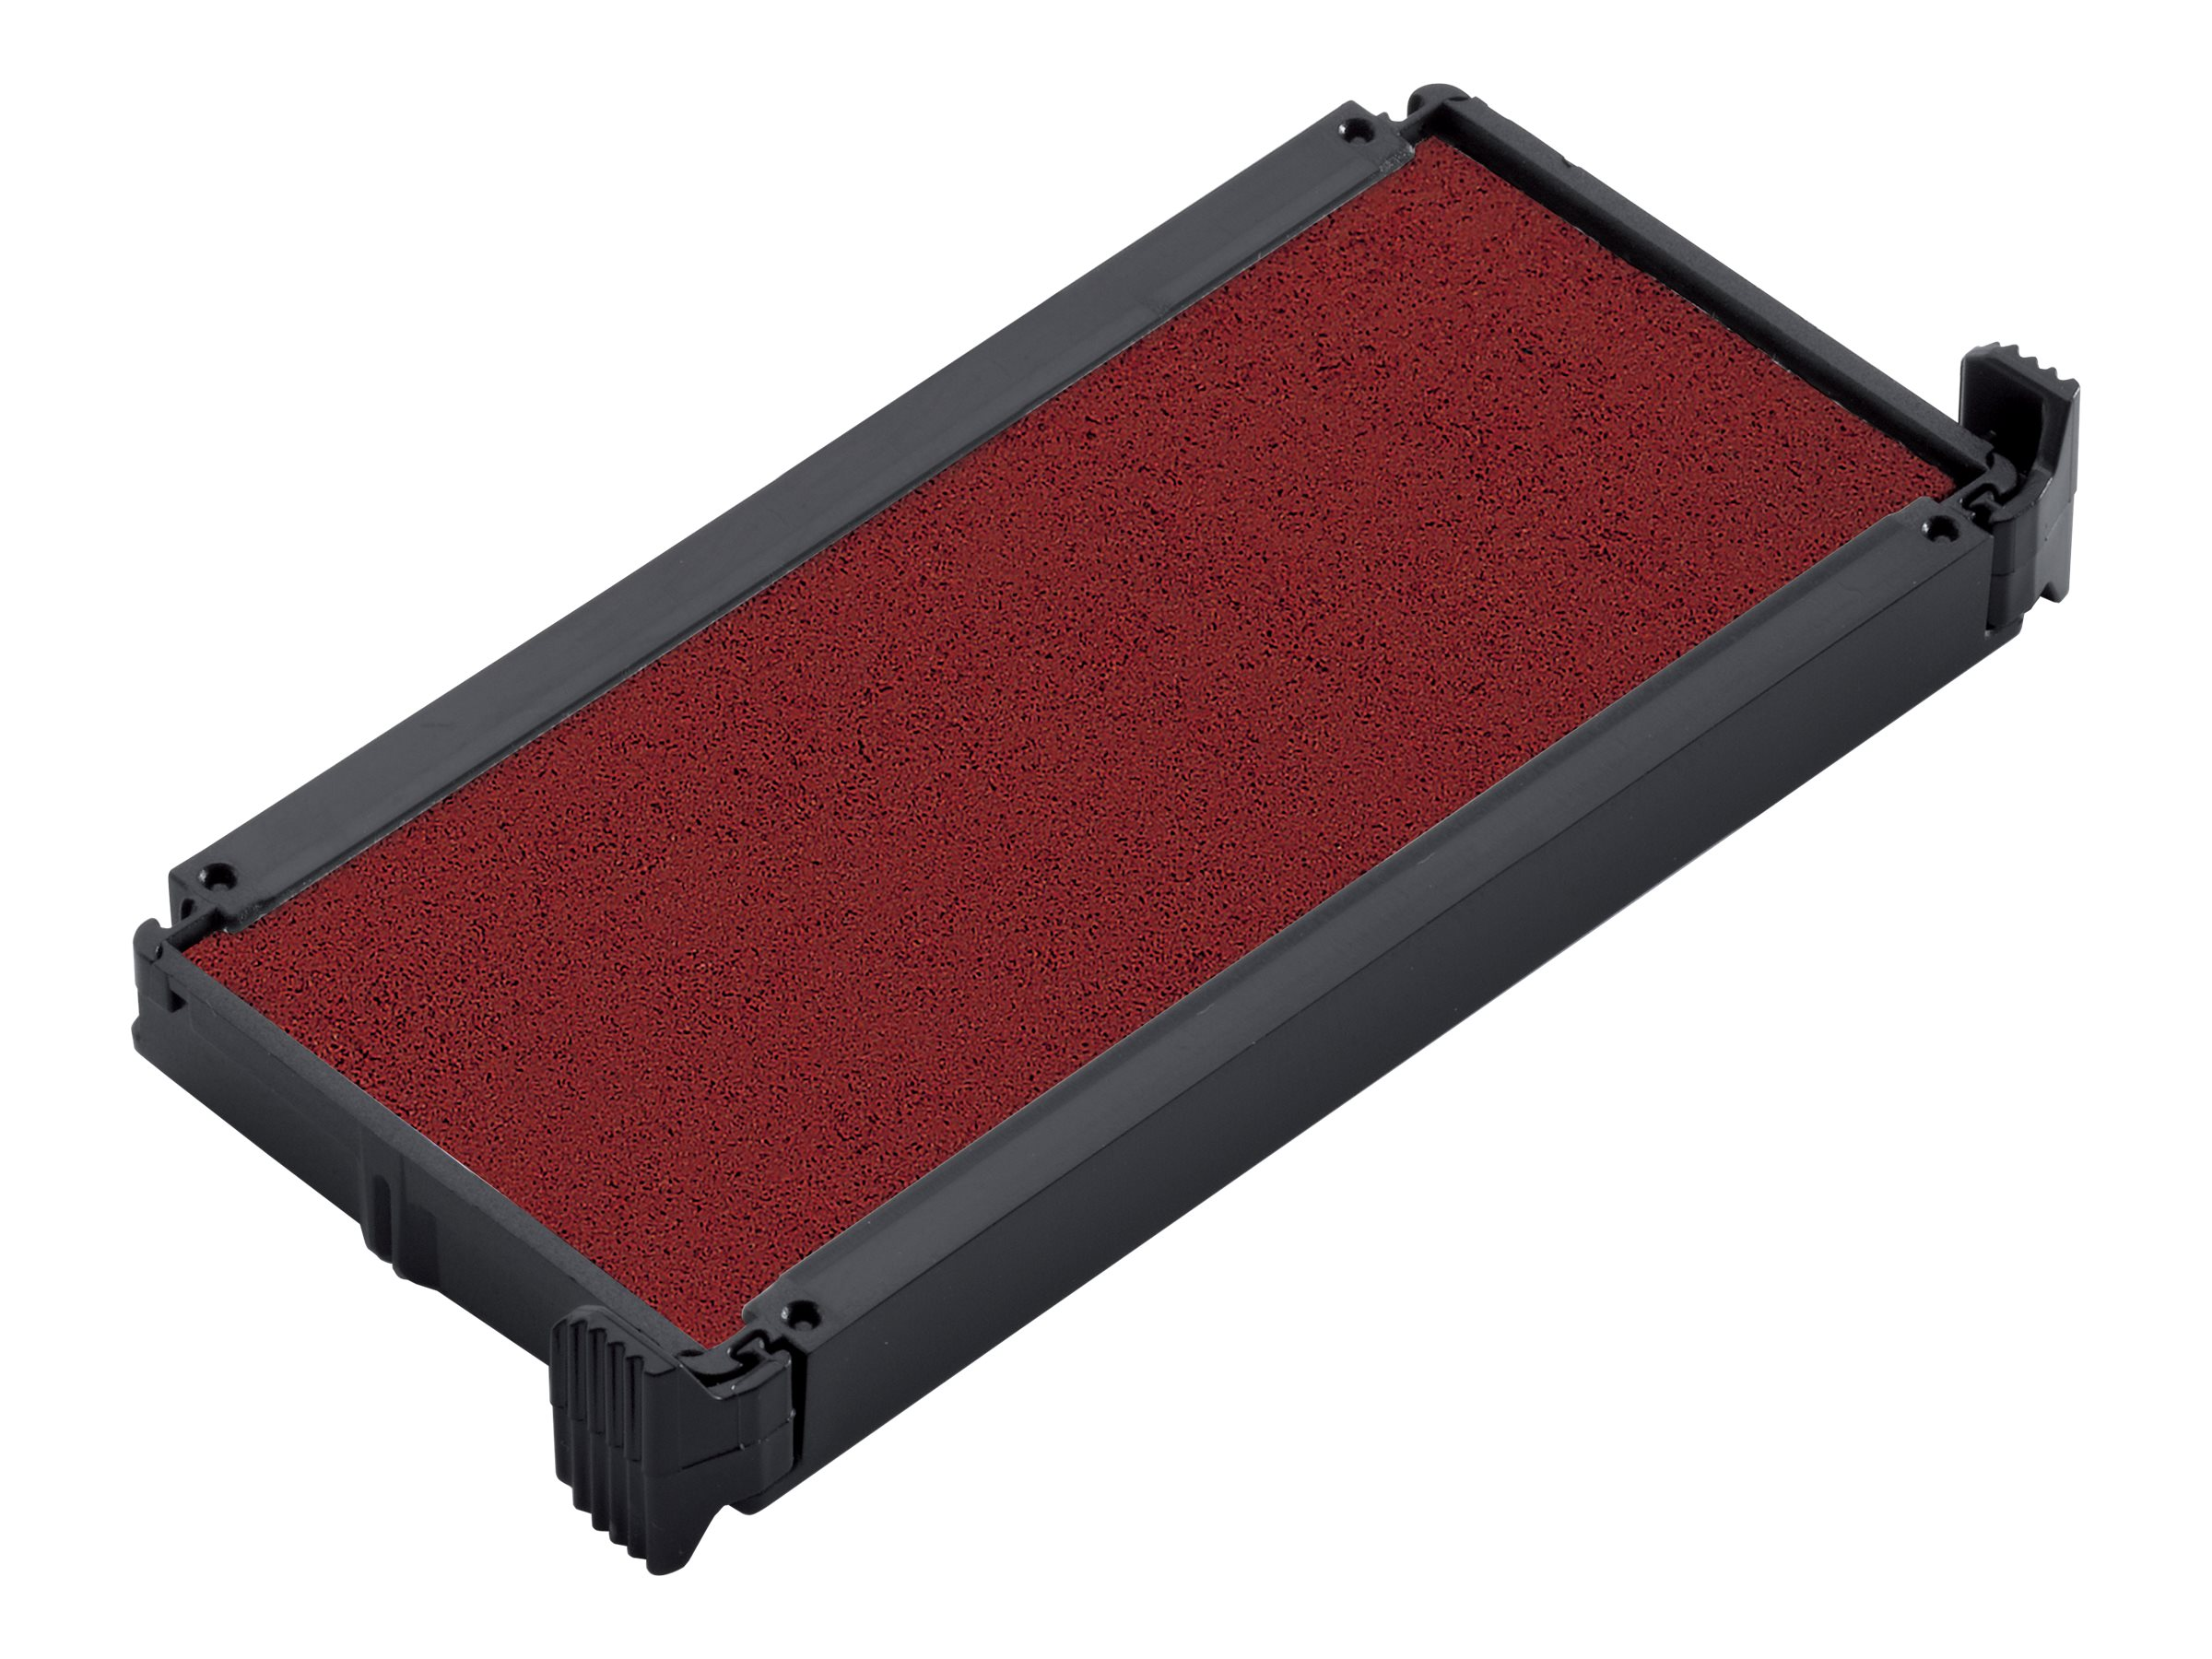 Trodat - 3 Encriers 6/4915 recharges pour tampon Printy 4915 - rouge